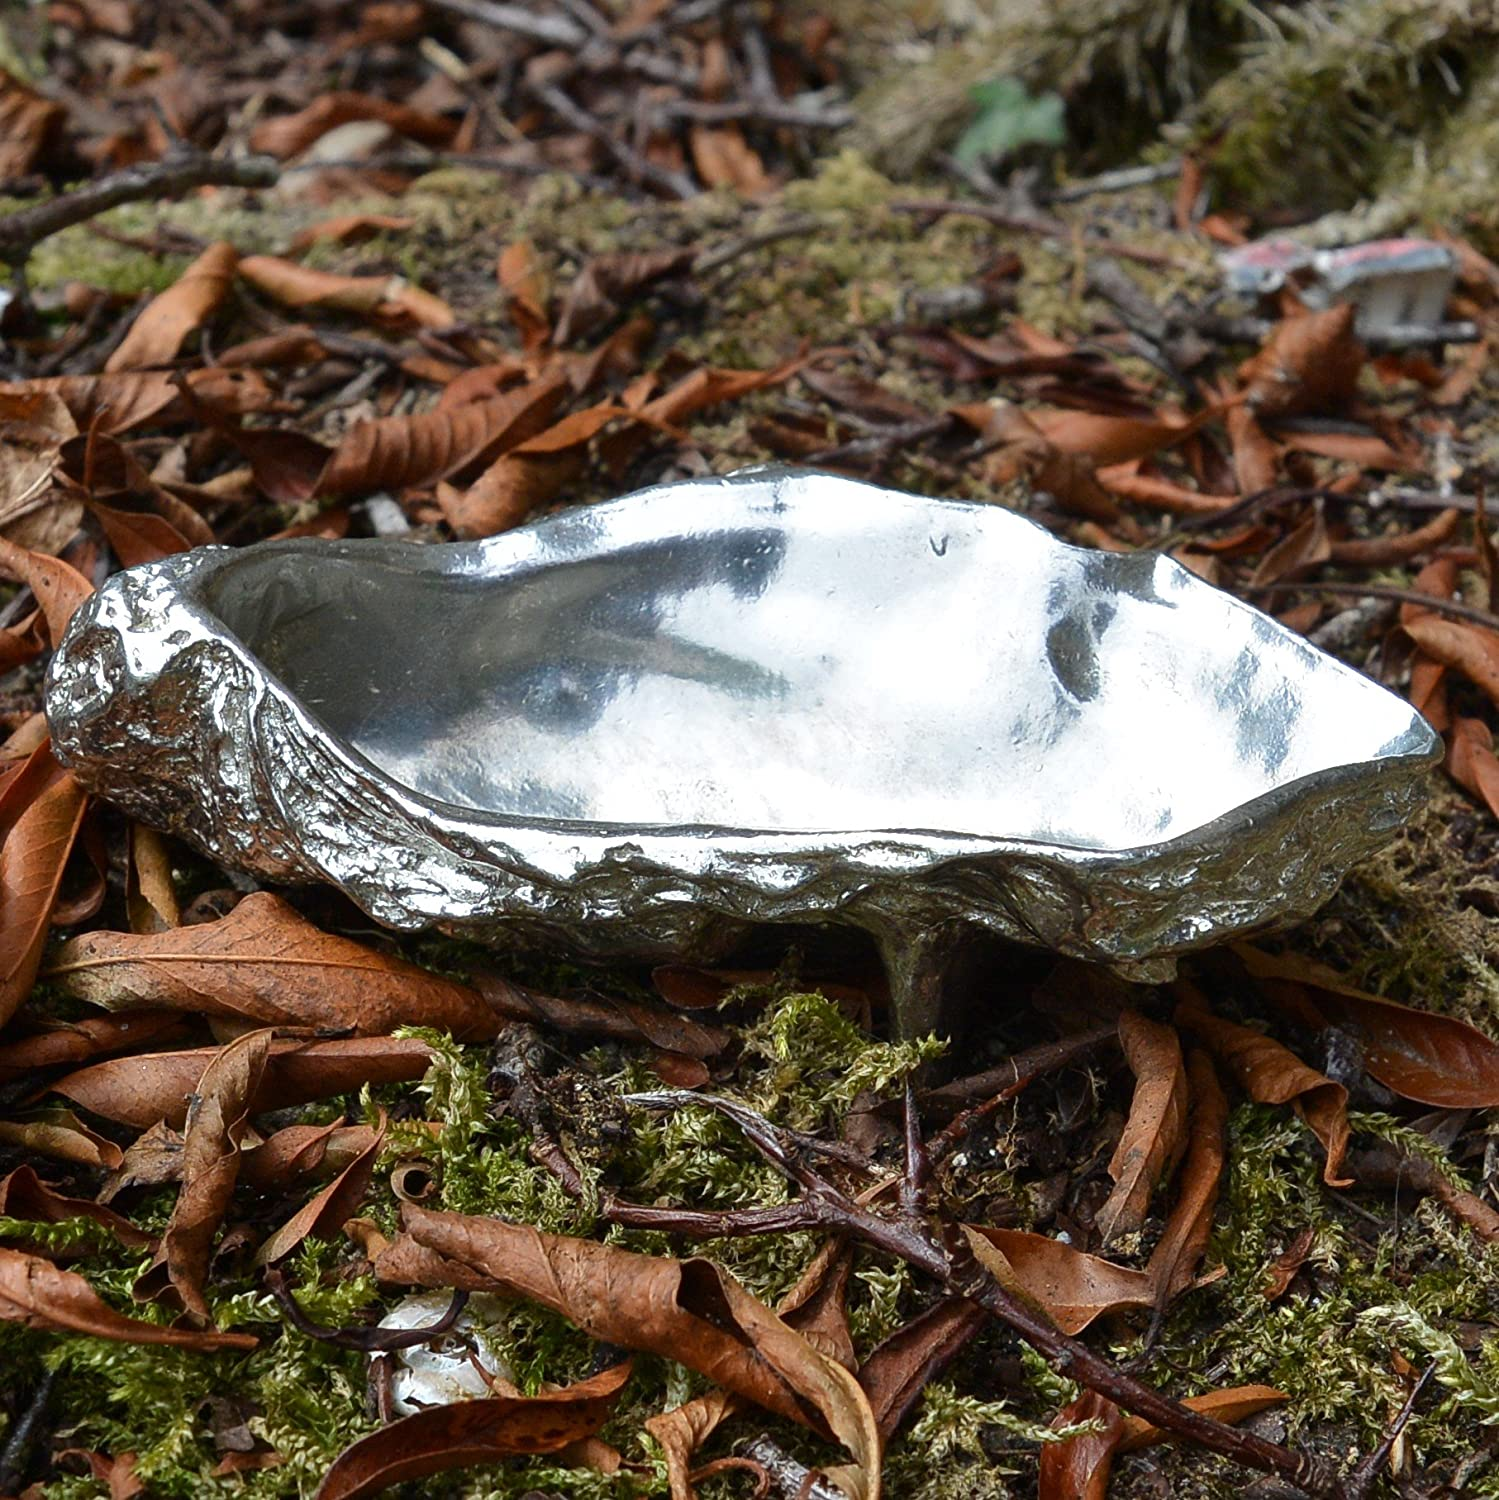 Fine Pewter Oyster Shell Pepper or Salt Bowl and Spoon Handcast by William Sturt in Lead-Free Pewter